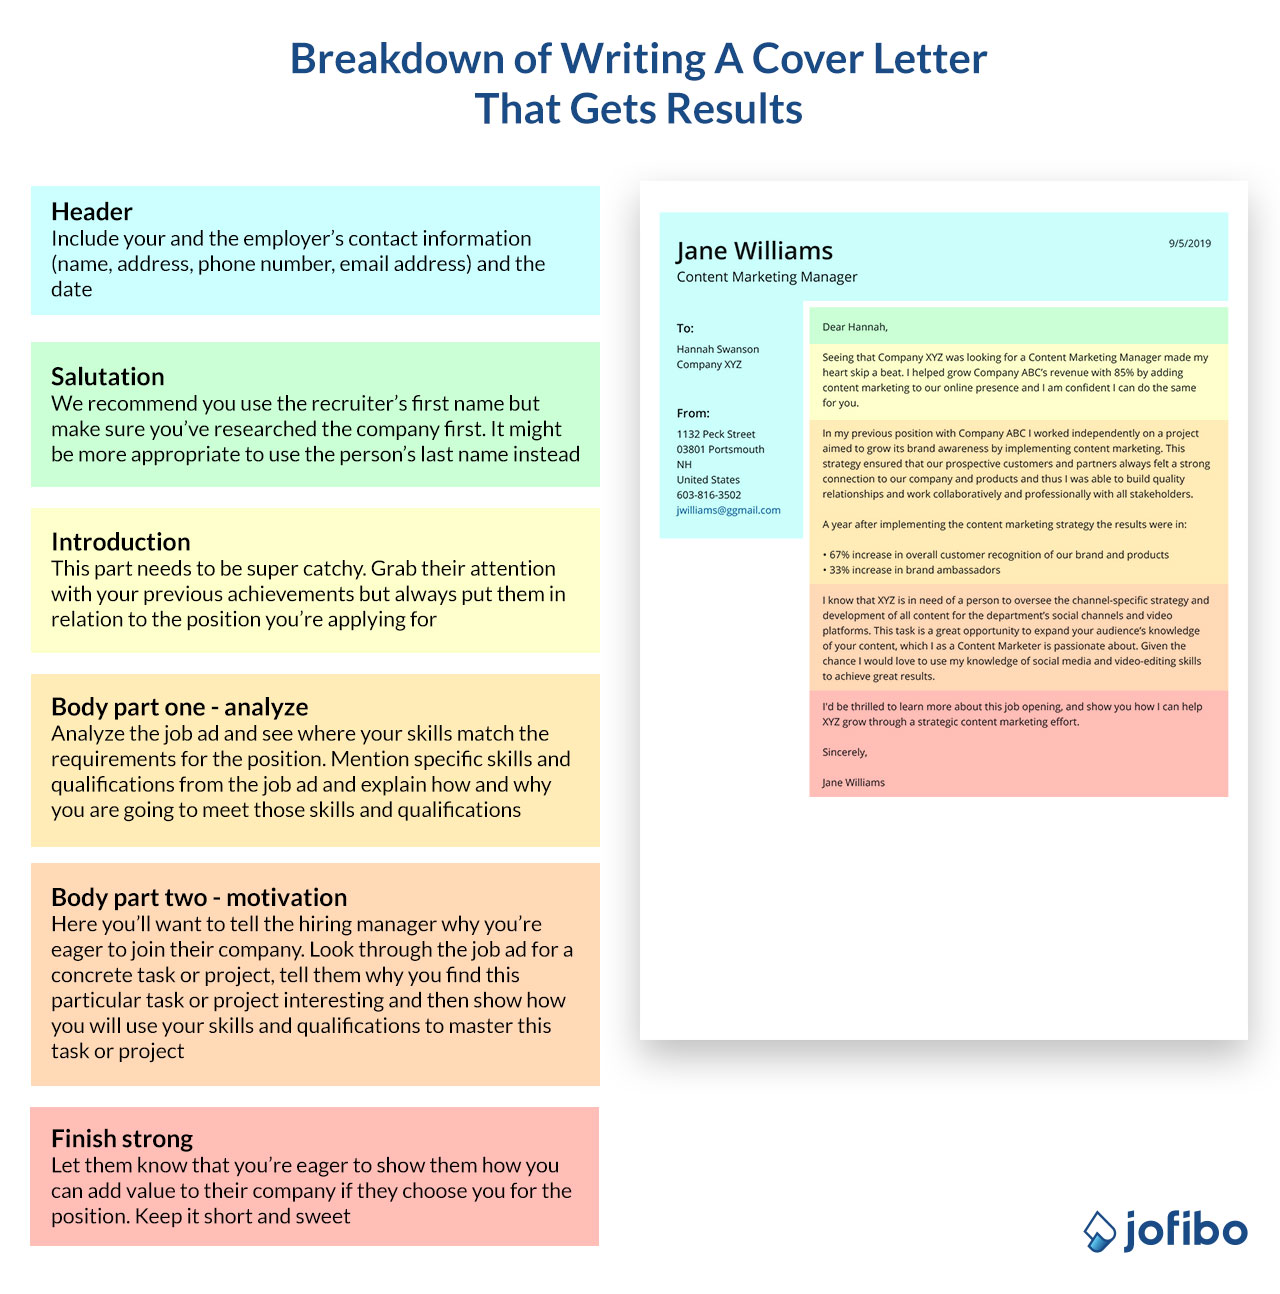 Infographic breakdown of how to write a cover letter that gets results